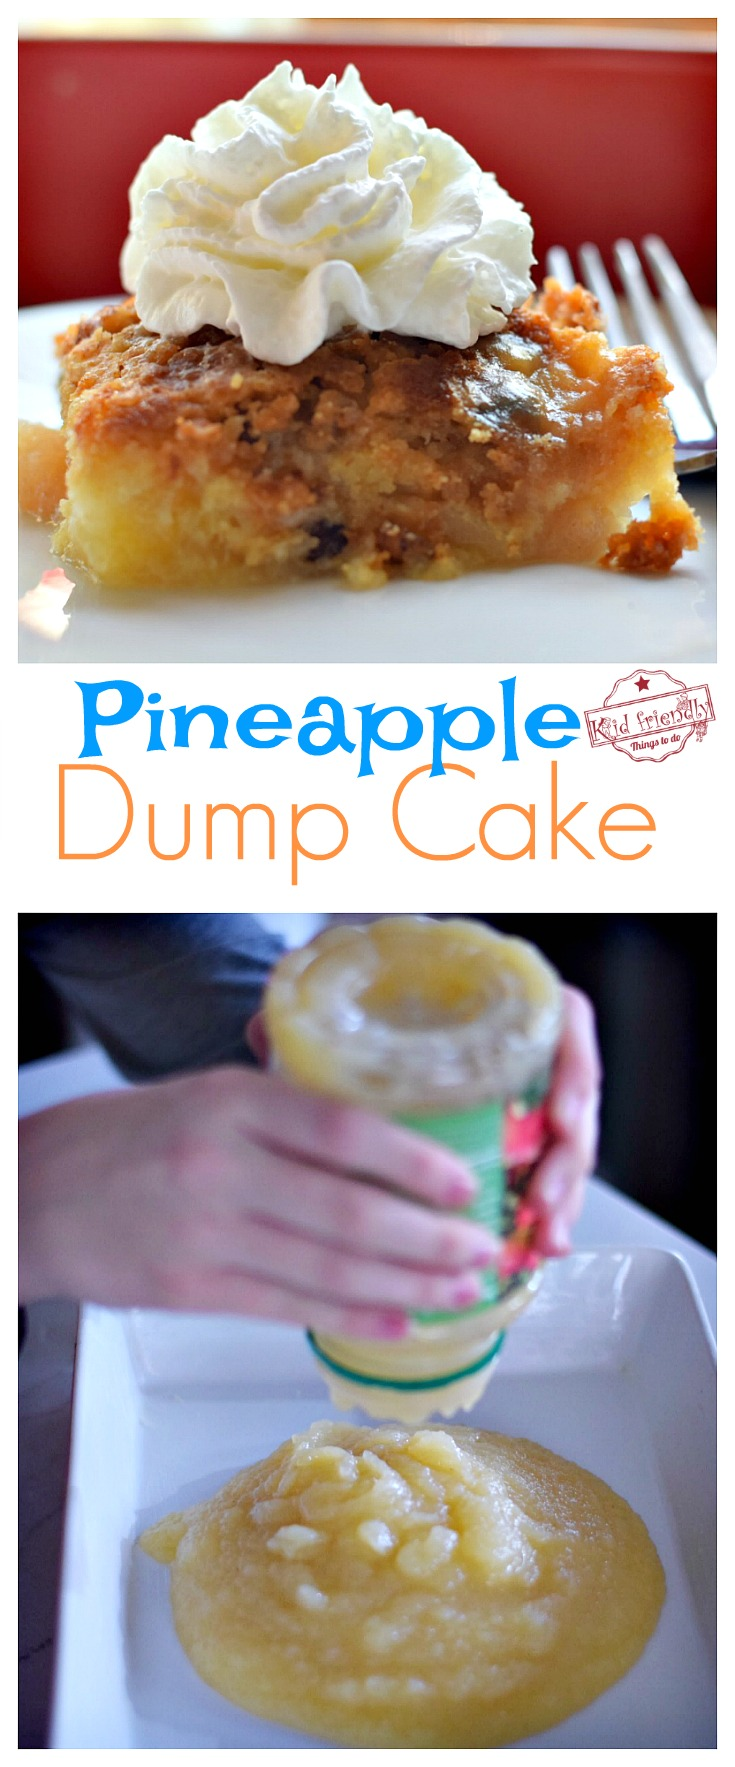 Pineapple Dump Cake Recipe - Easy, Fun and Delicious! Fun to make with the kids - www.kidfriendlythingstodo.com